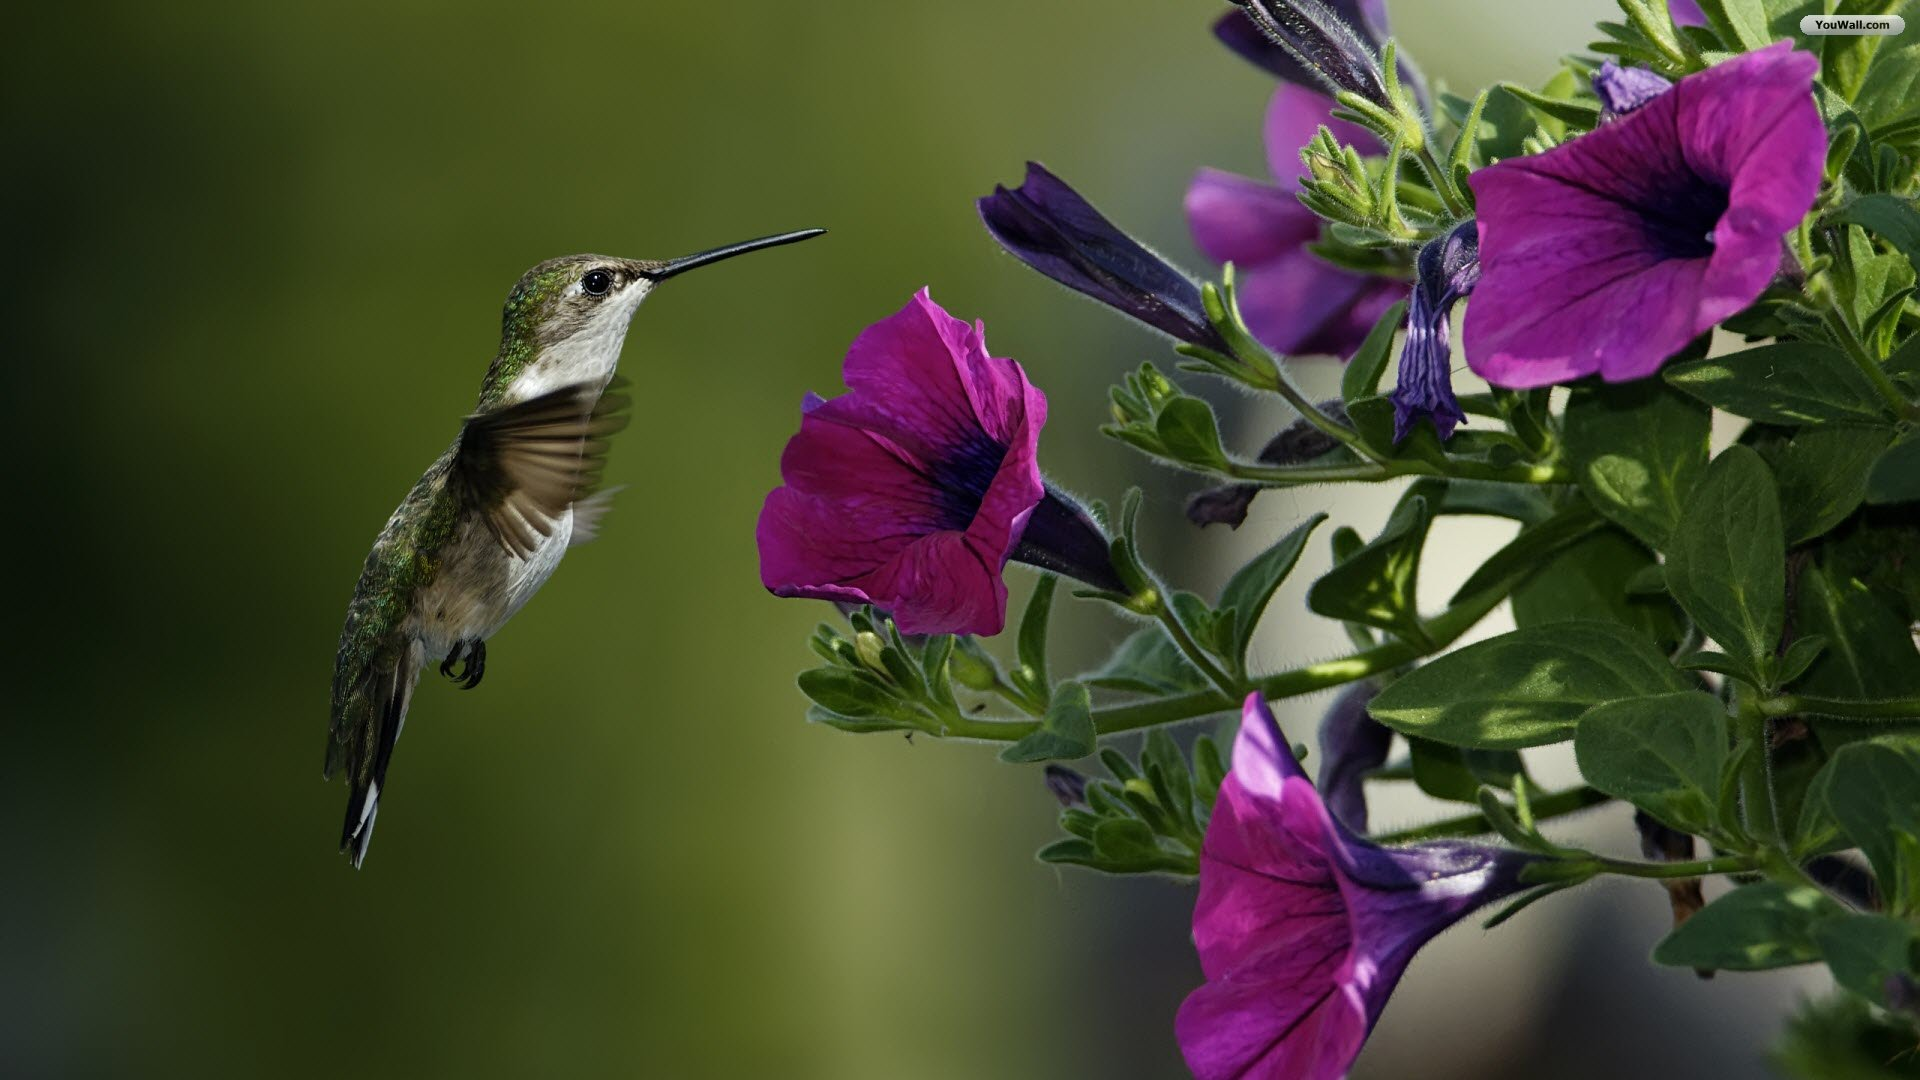 Free Download Download Image Images Birds Flowers Wallpaper 1920x1080 Full Hd 1920x1080 For Your Desktop Mobile Tablet Explore 48 Birds Wallpaper Free Download Parrot Wallpapers Free Download Free Bird